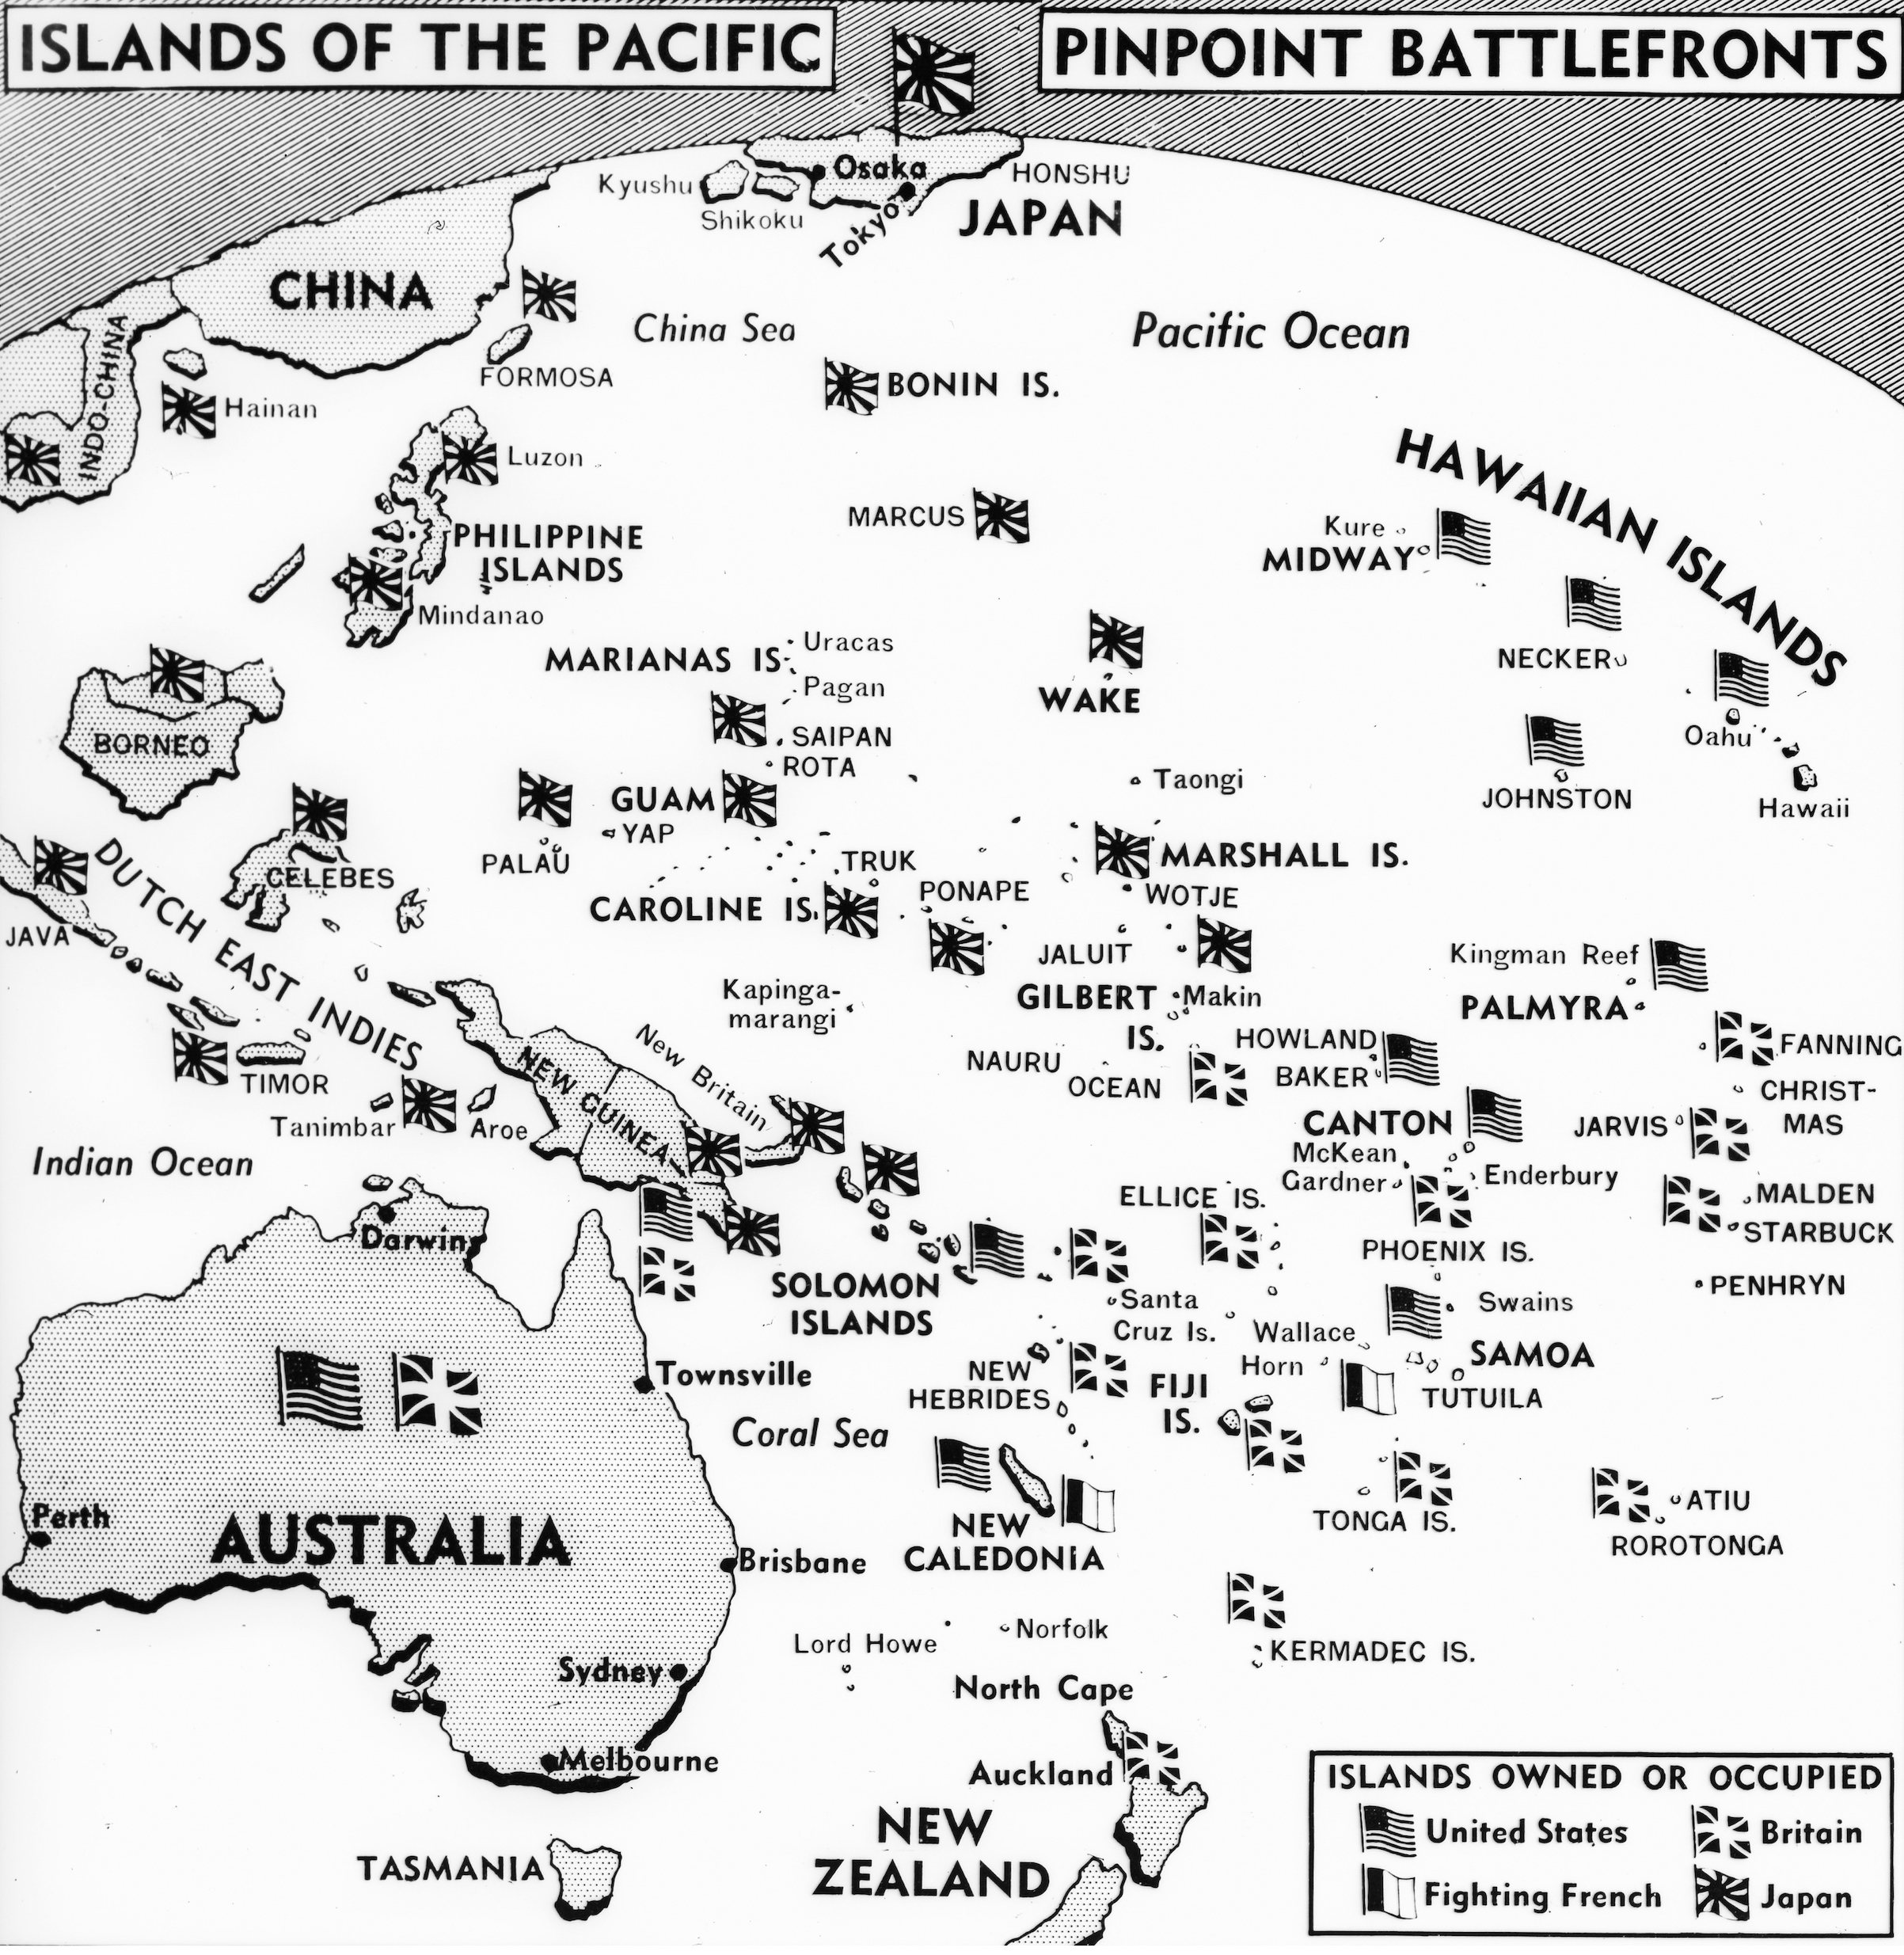 A 1942 map, laying out the World War II battlefields of the Pacific, shows the powers that control or occupy the islands of the area